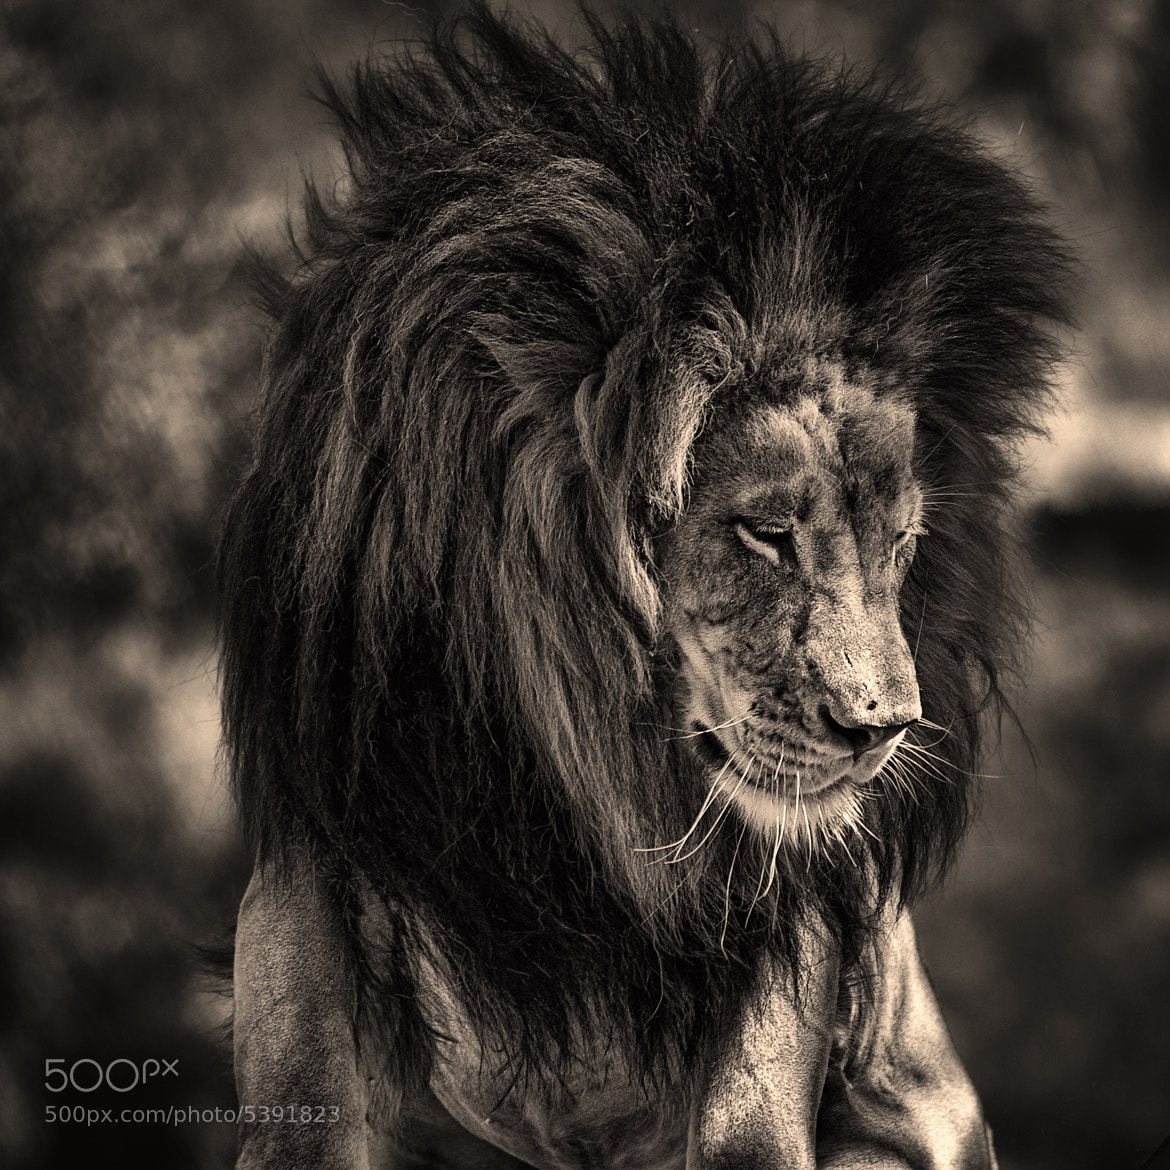 Photograph The King by Shahriar Erfanian on 500px